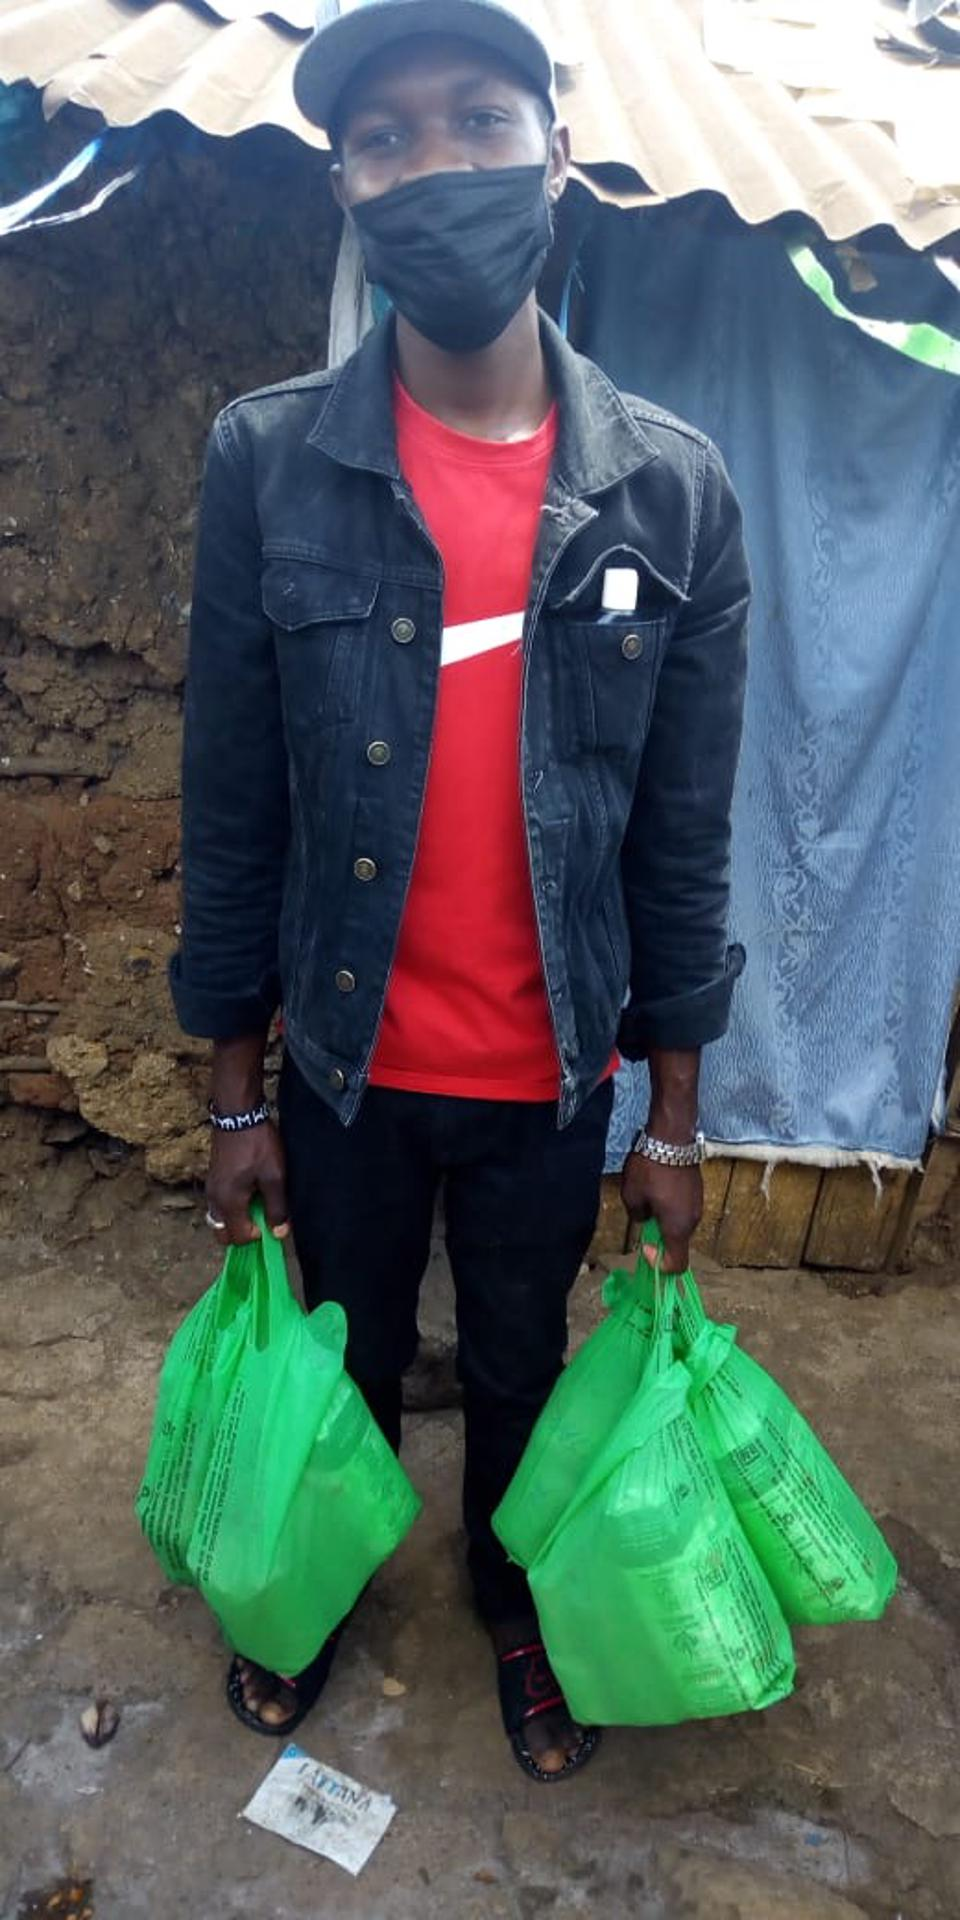 Man in jacket and red shirt holding green bags.